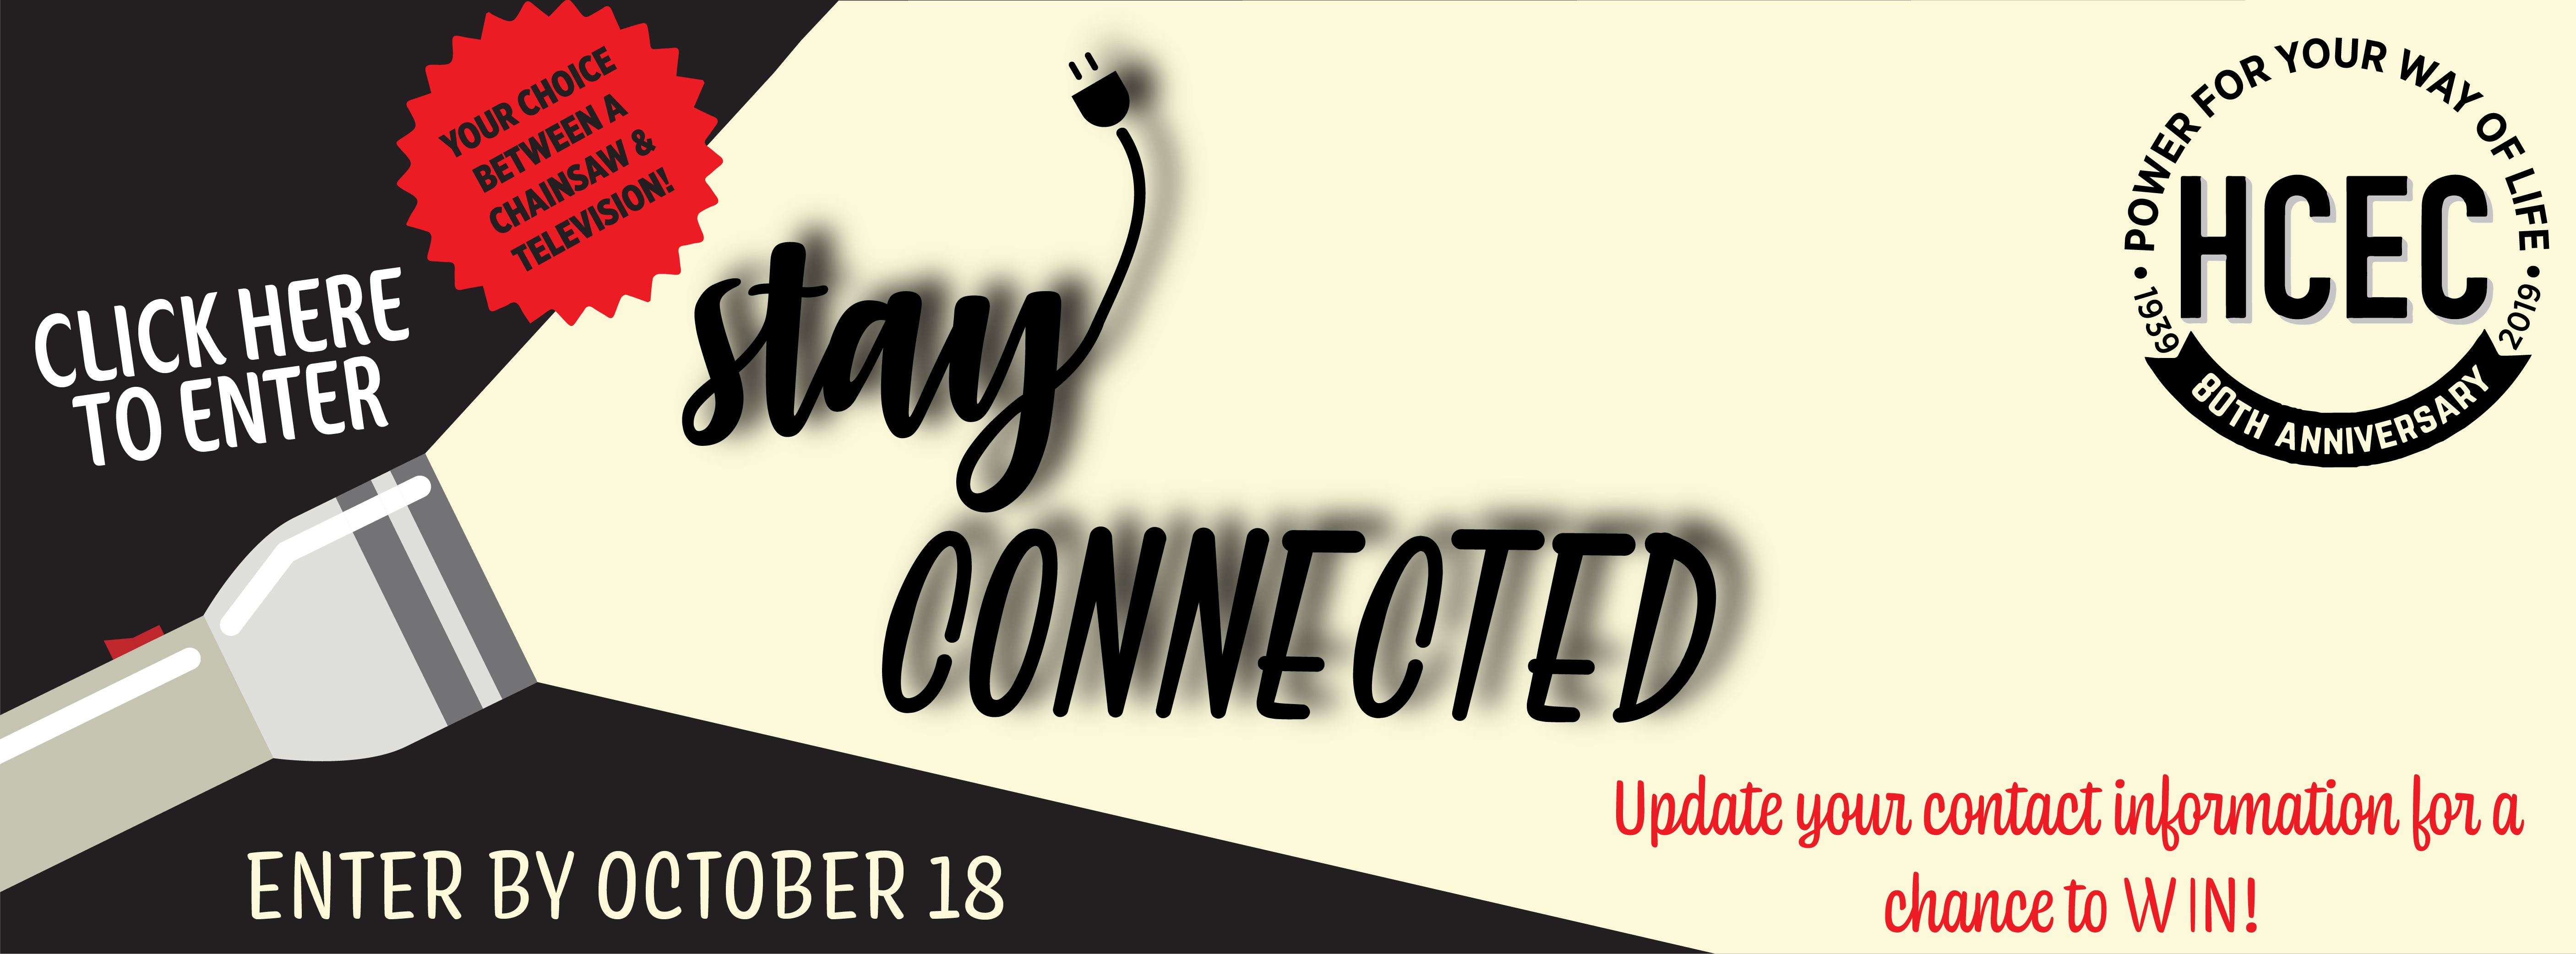 Stay Connected Contest